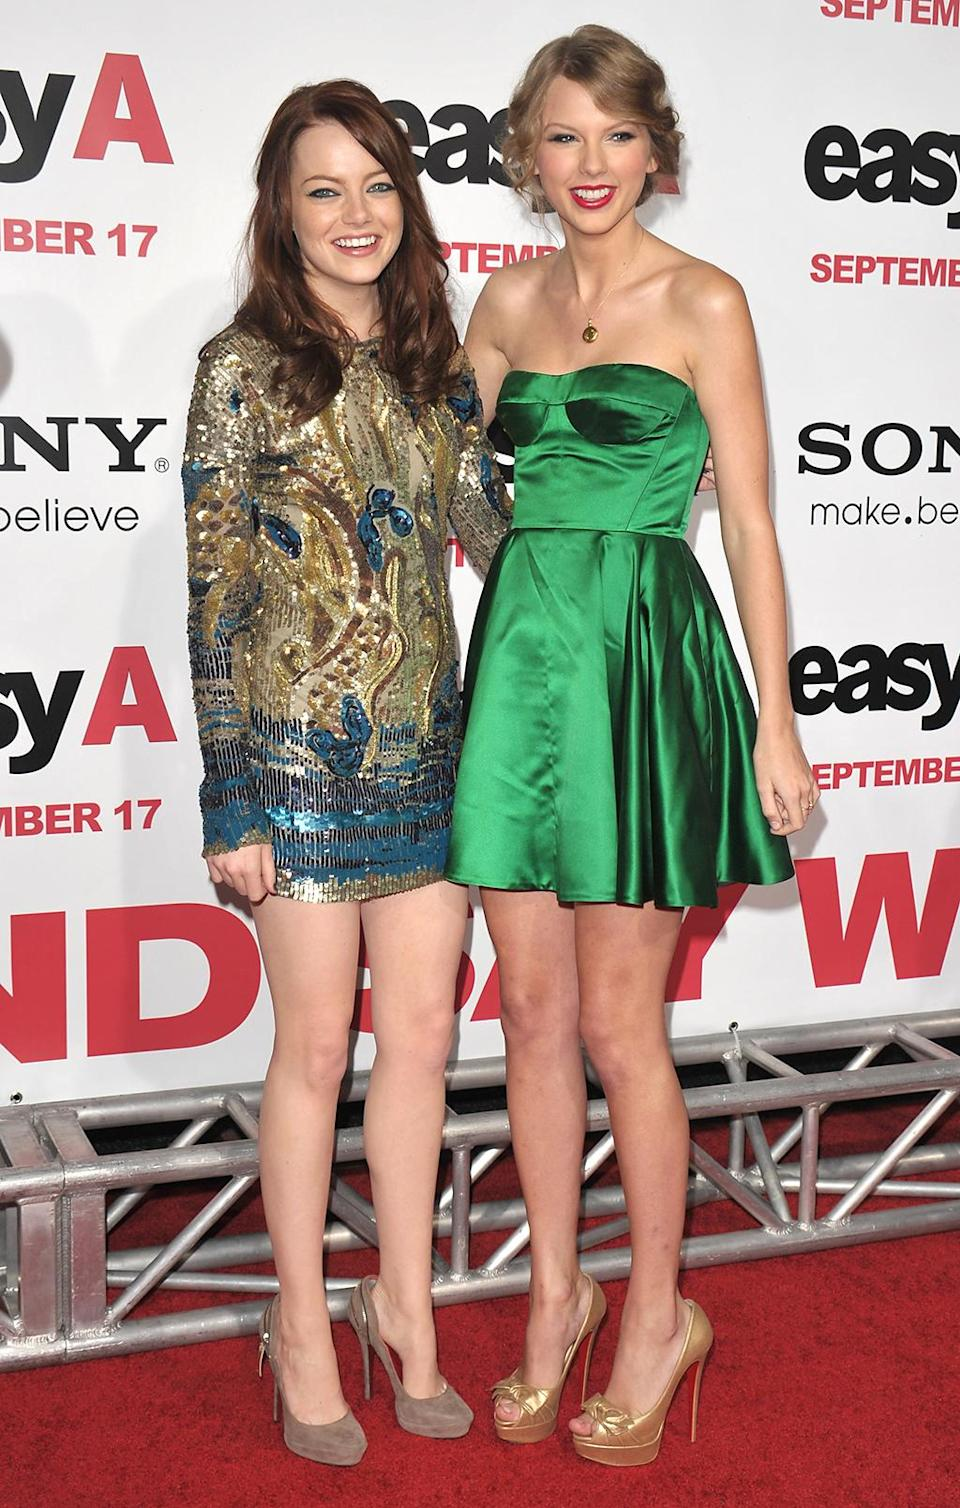 <p>Stone proves she can carry a film with a star turn in 2010's hit <em>Easy A.</em> She brings pal Taylor Swift to the Los Angeles premiere on Sept. 13, 2010. (Photo: John Shearer/WireImage) </p>